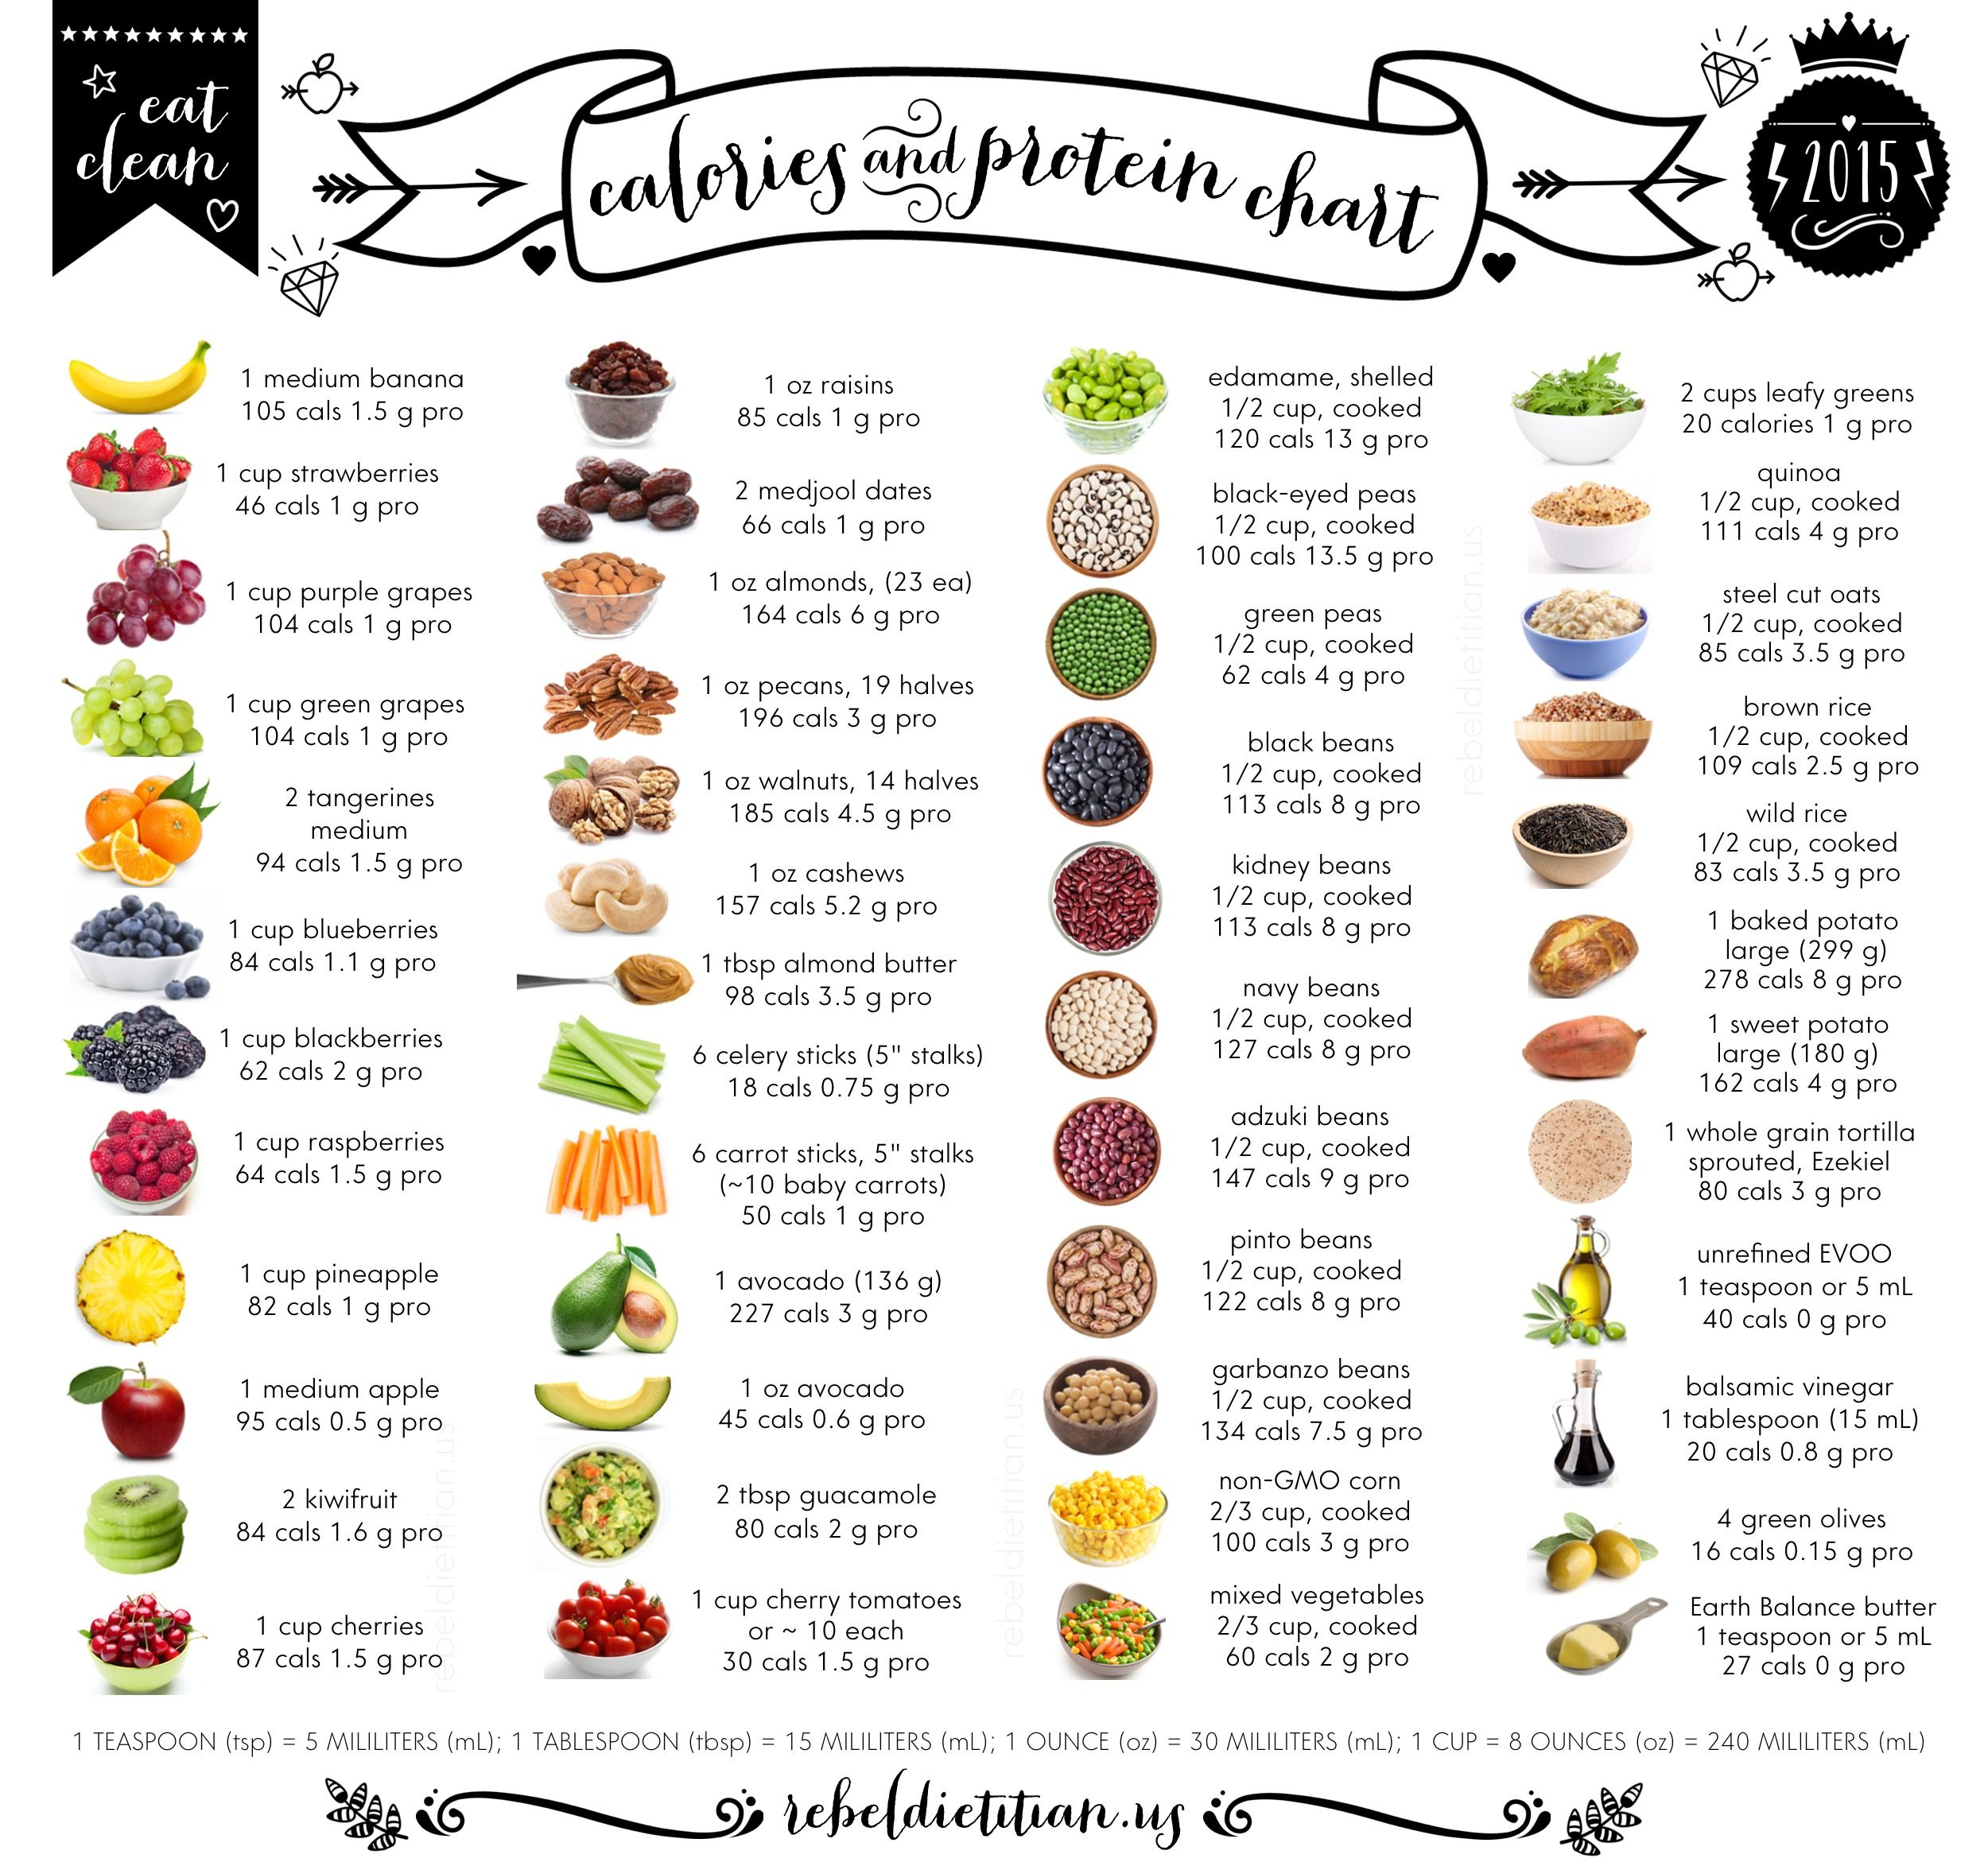 food with calories chart: Calorie and protein chart eat clean pinterest protein chart